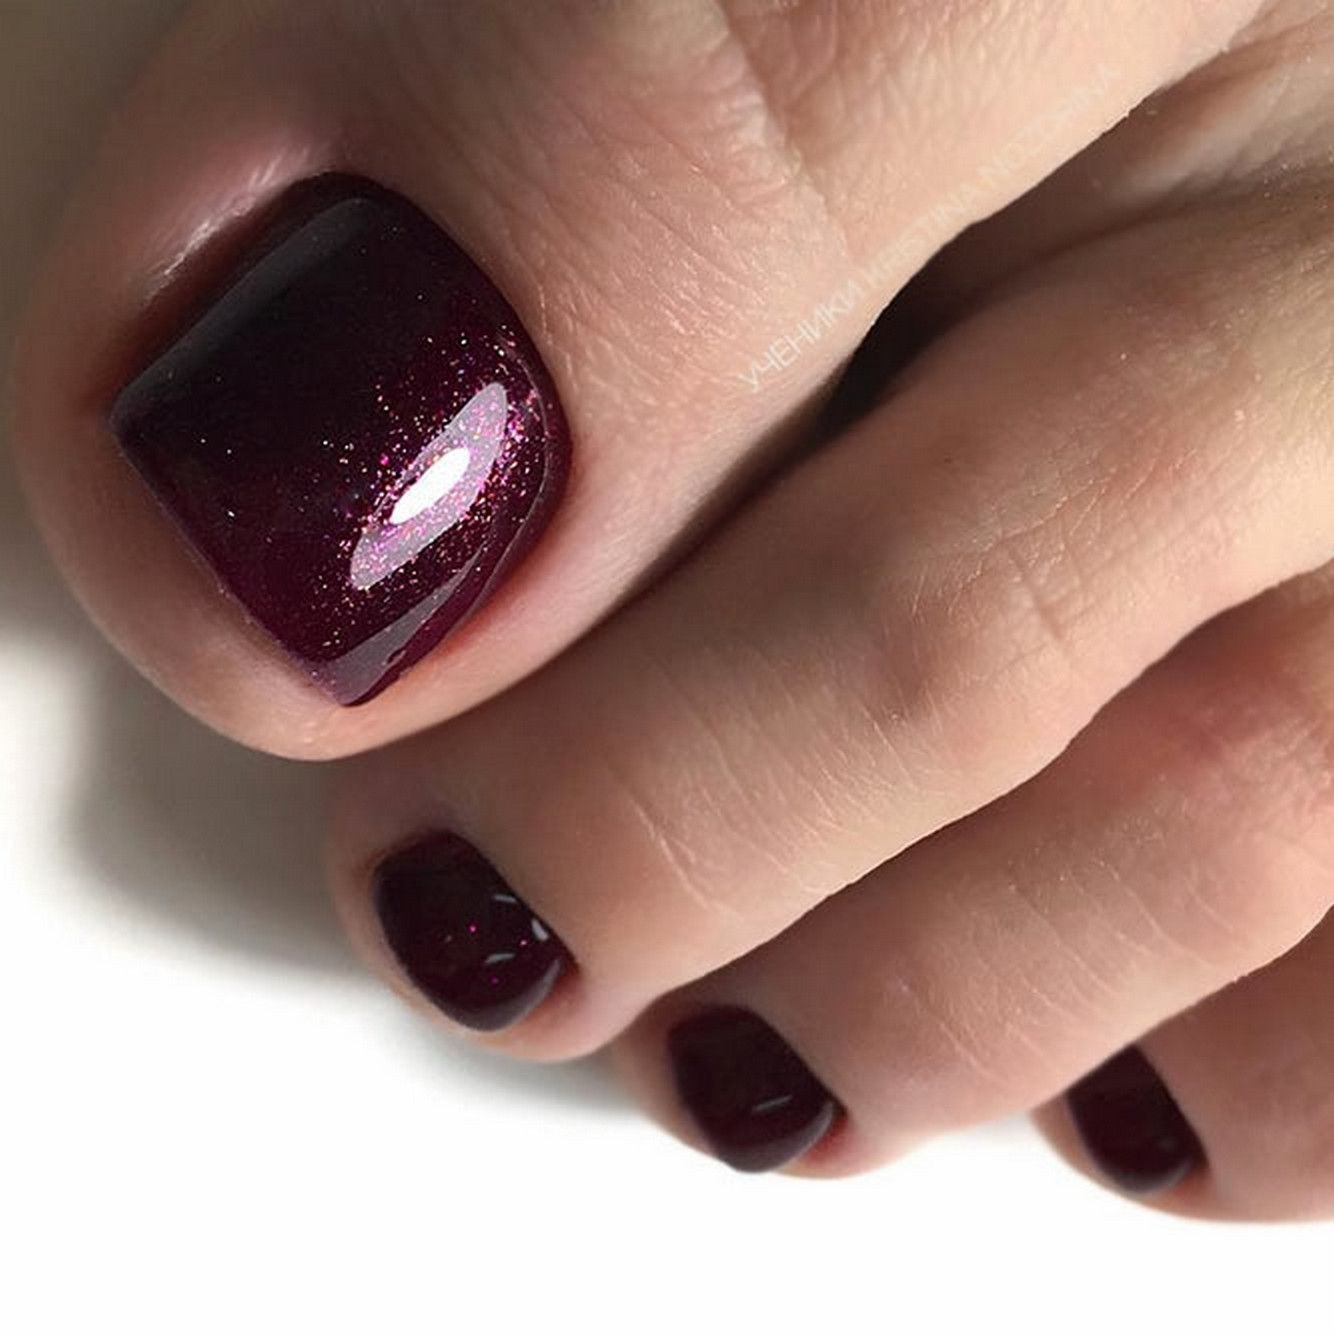 48 amazing toe nail colors to choose in 2019 47 | Toe nail ...